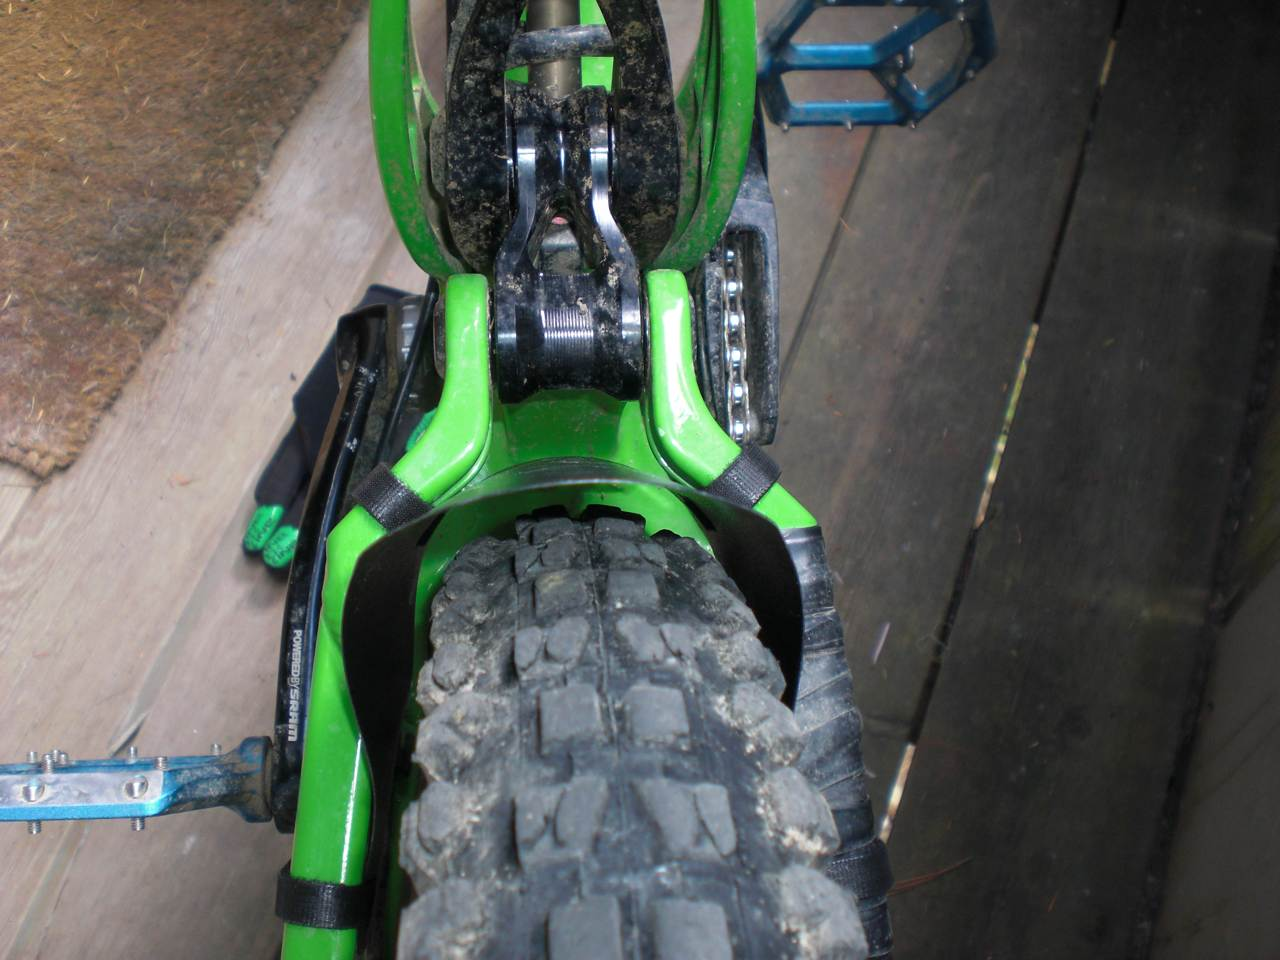 Mudguard for Mucky nutz bender fender template